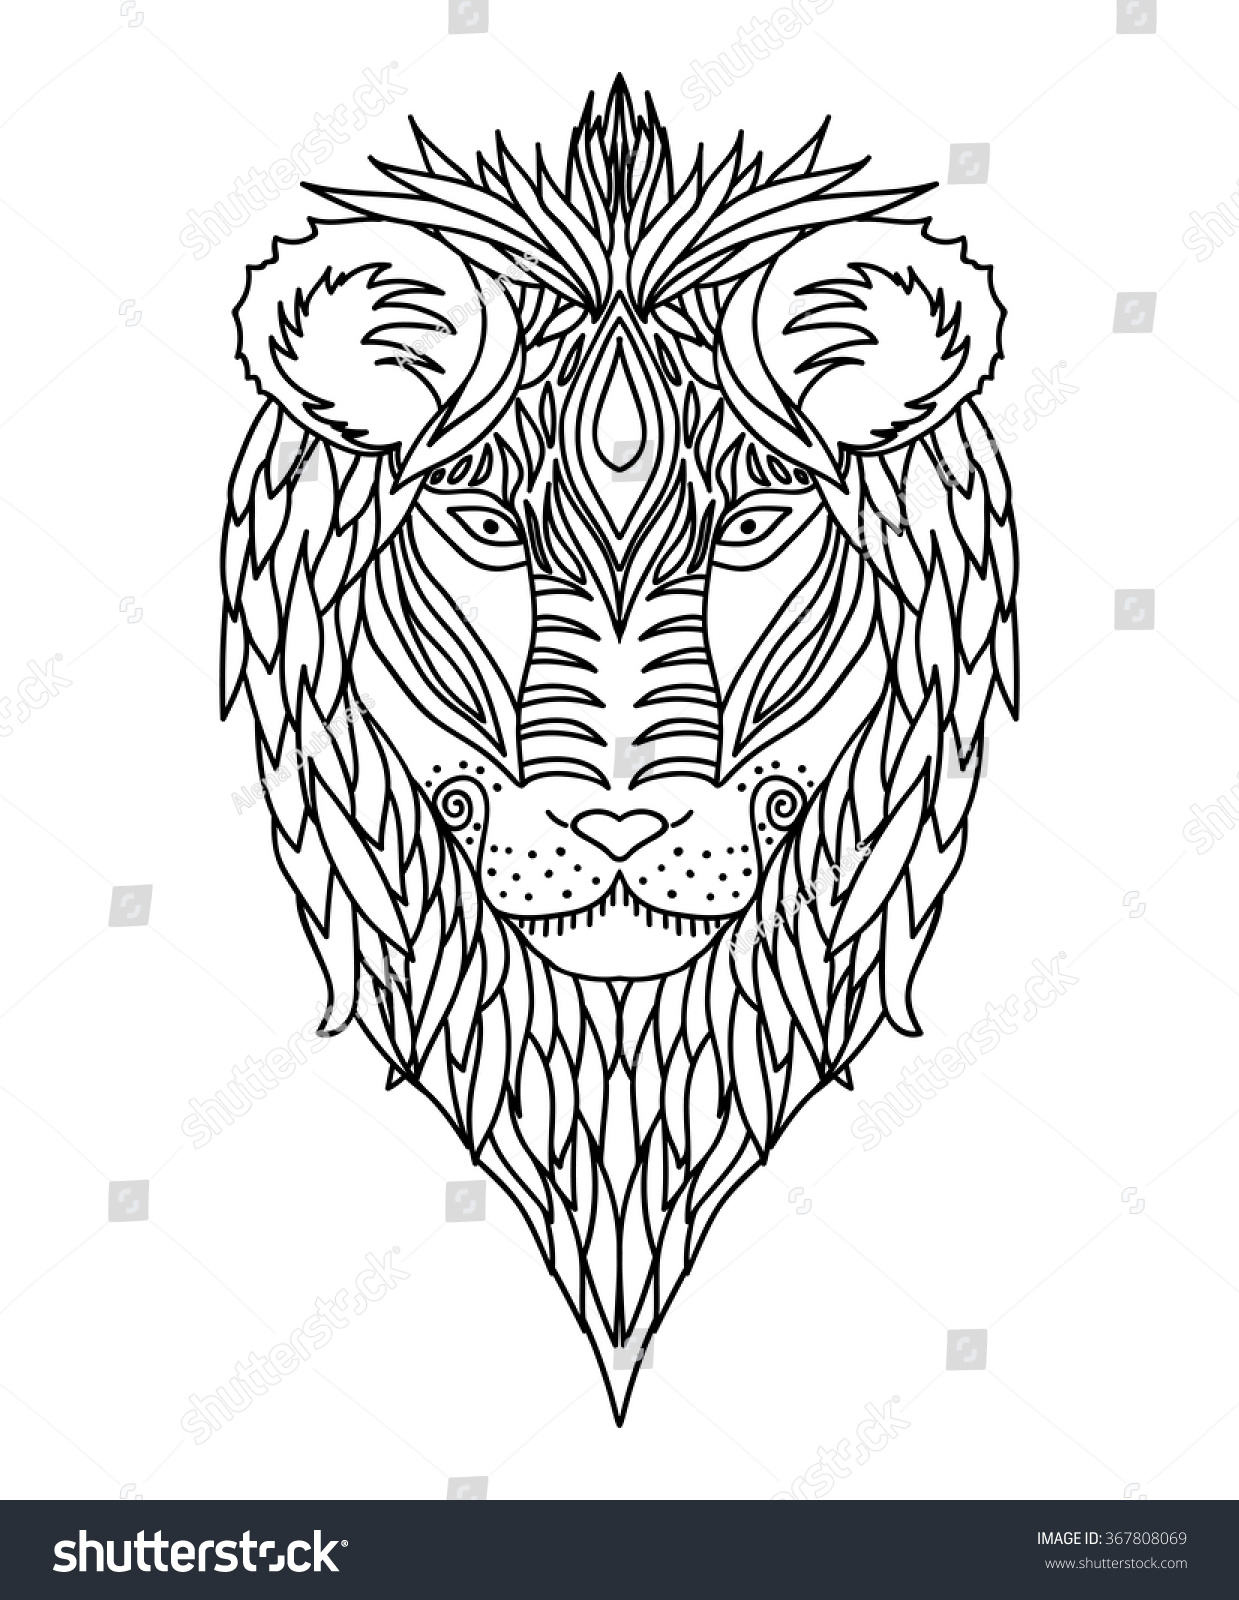 Coloring book for adults lion - Black And White Ornament Of The Face Of The African Wild King Of Beasts Lion Design